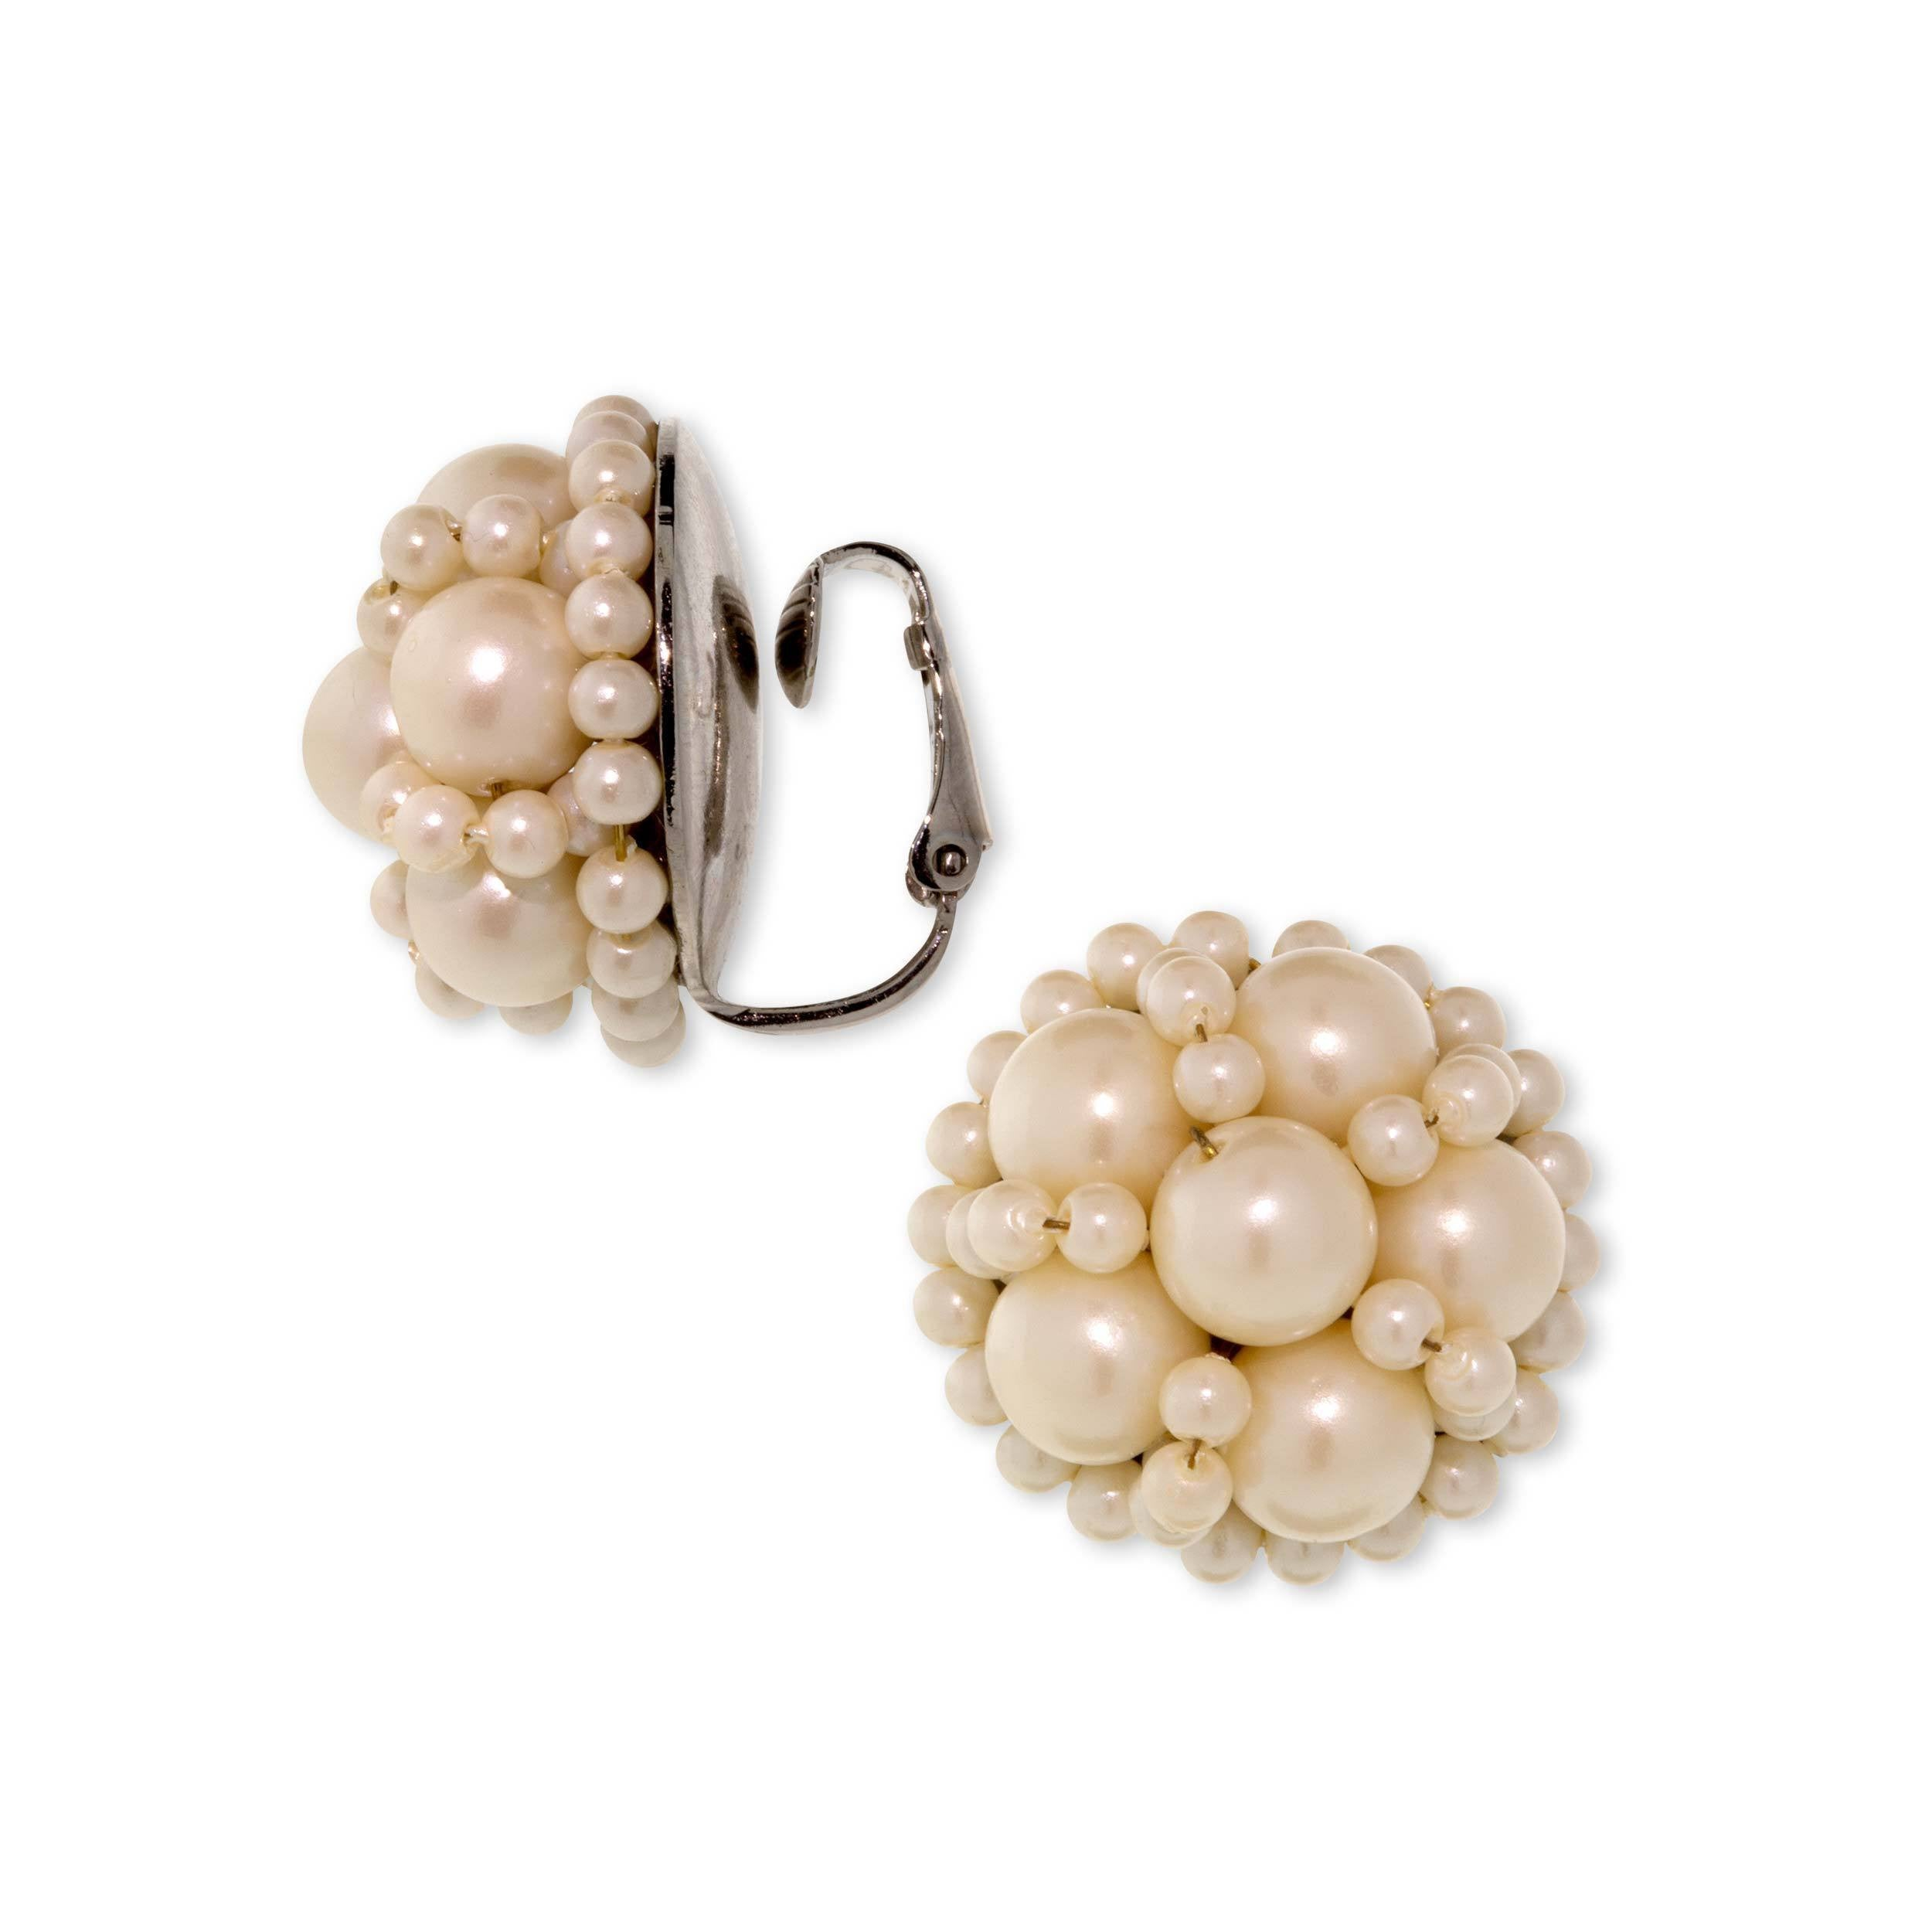 Silver Tone Large Round Multi Pearl Clip Earring